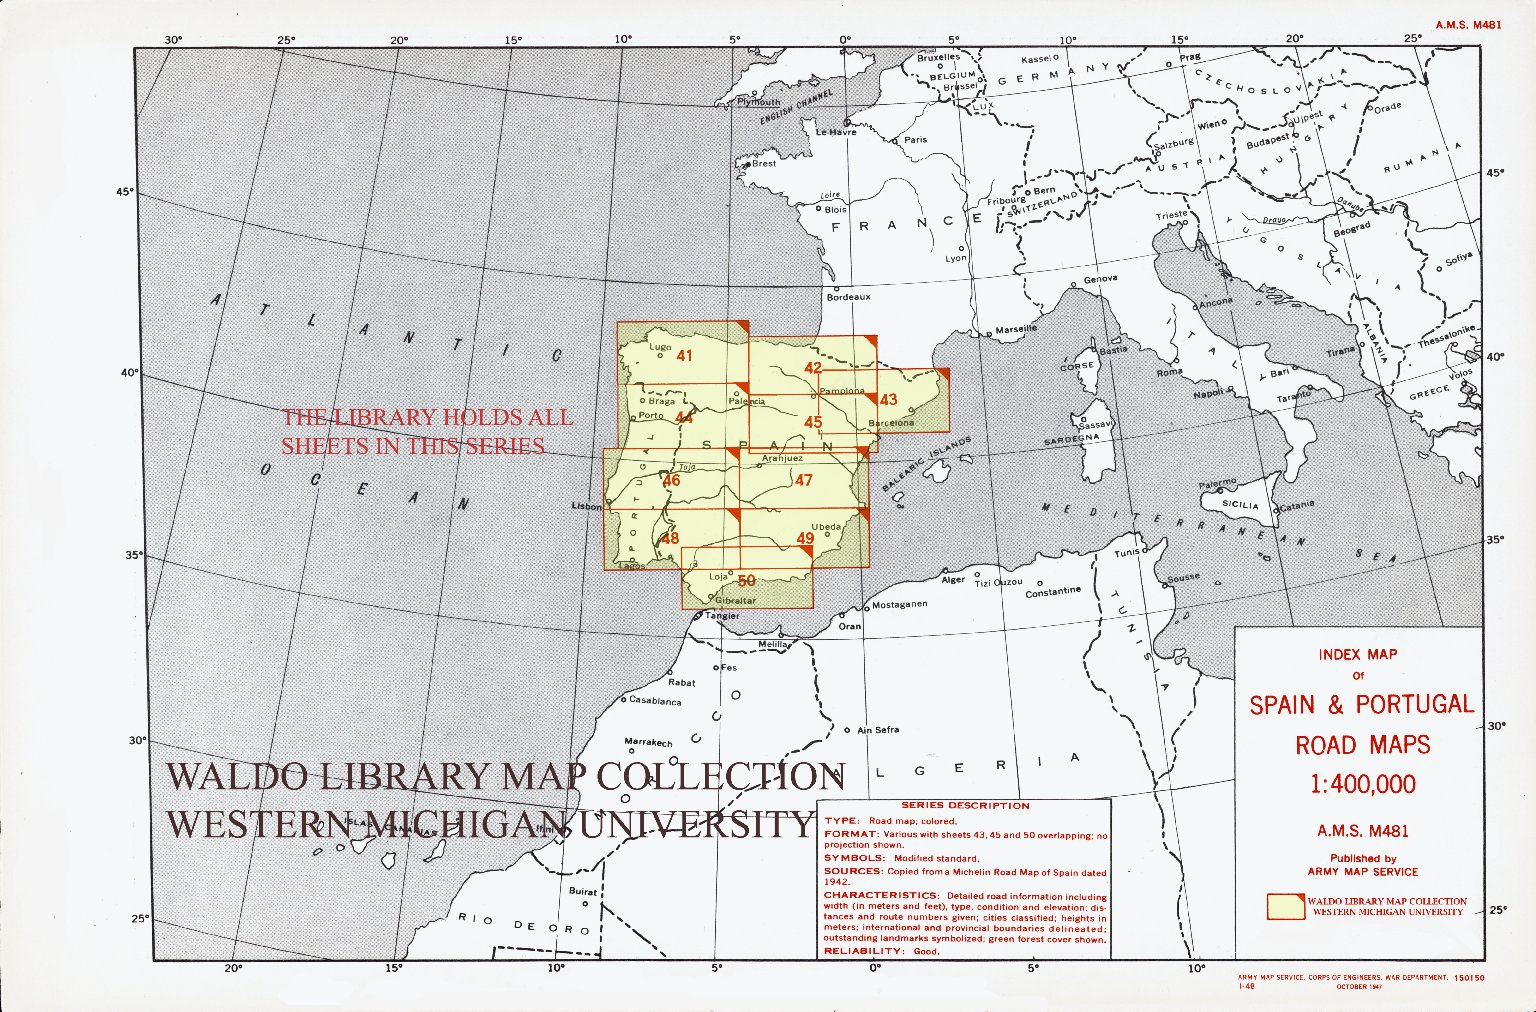 Index map of Spain & Portugal road maps 1:400,000